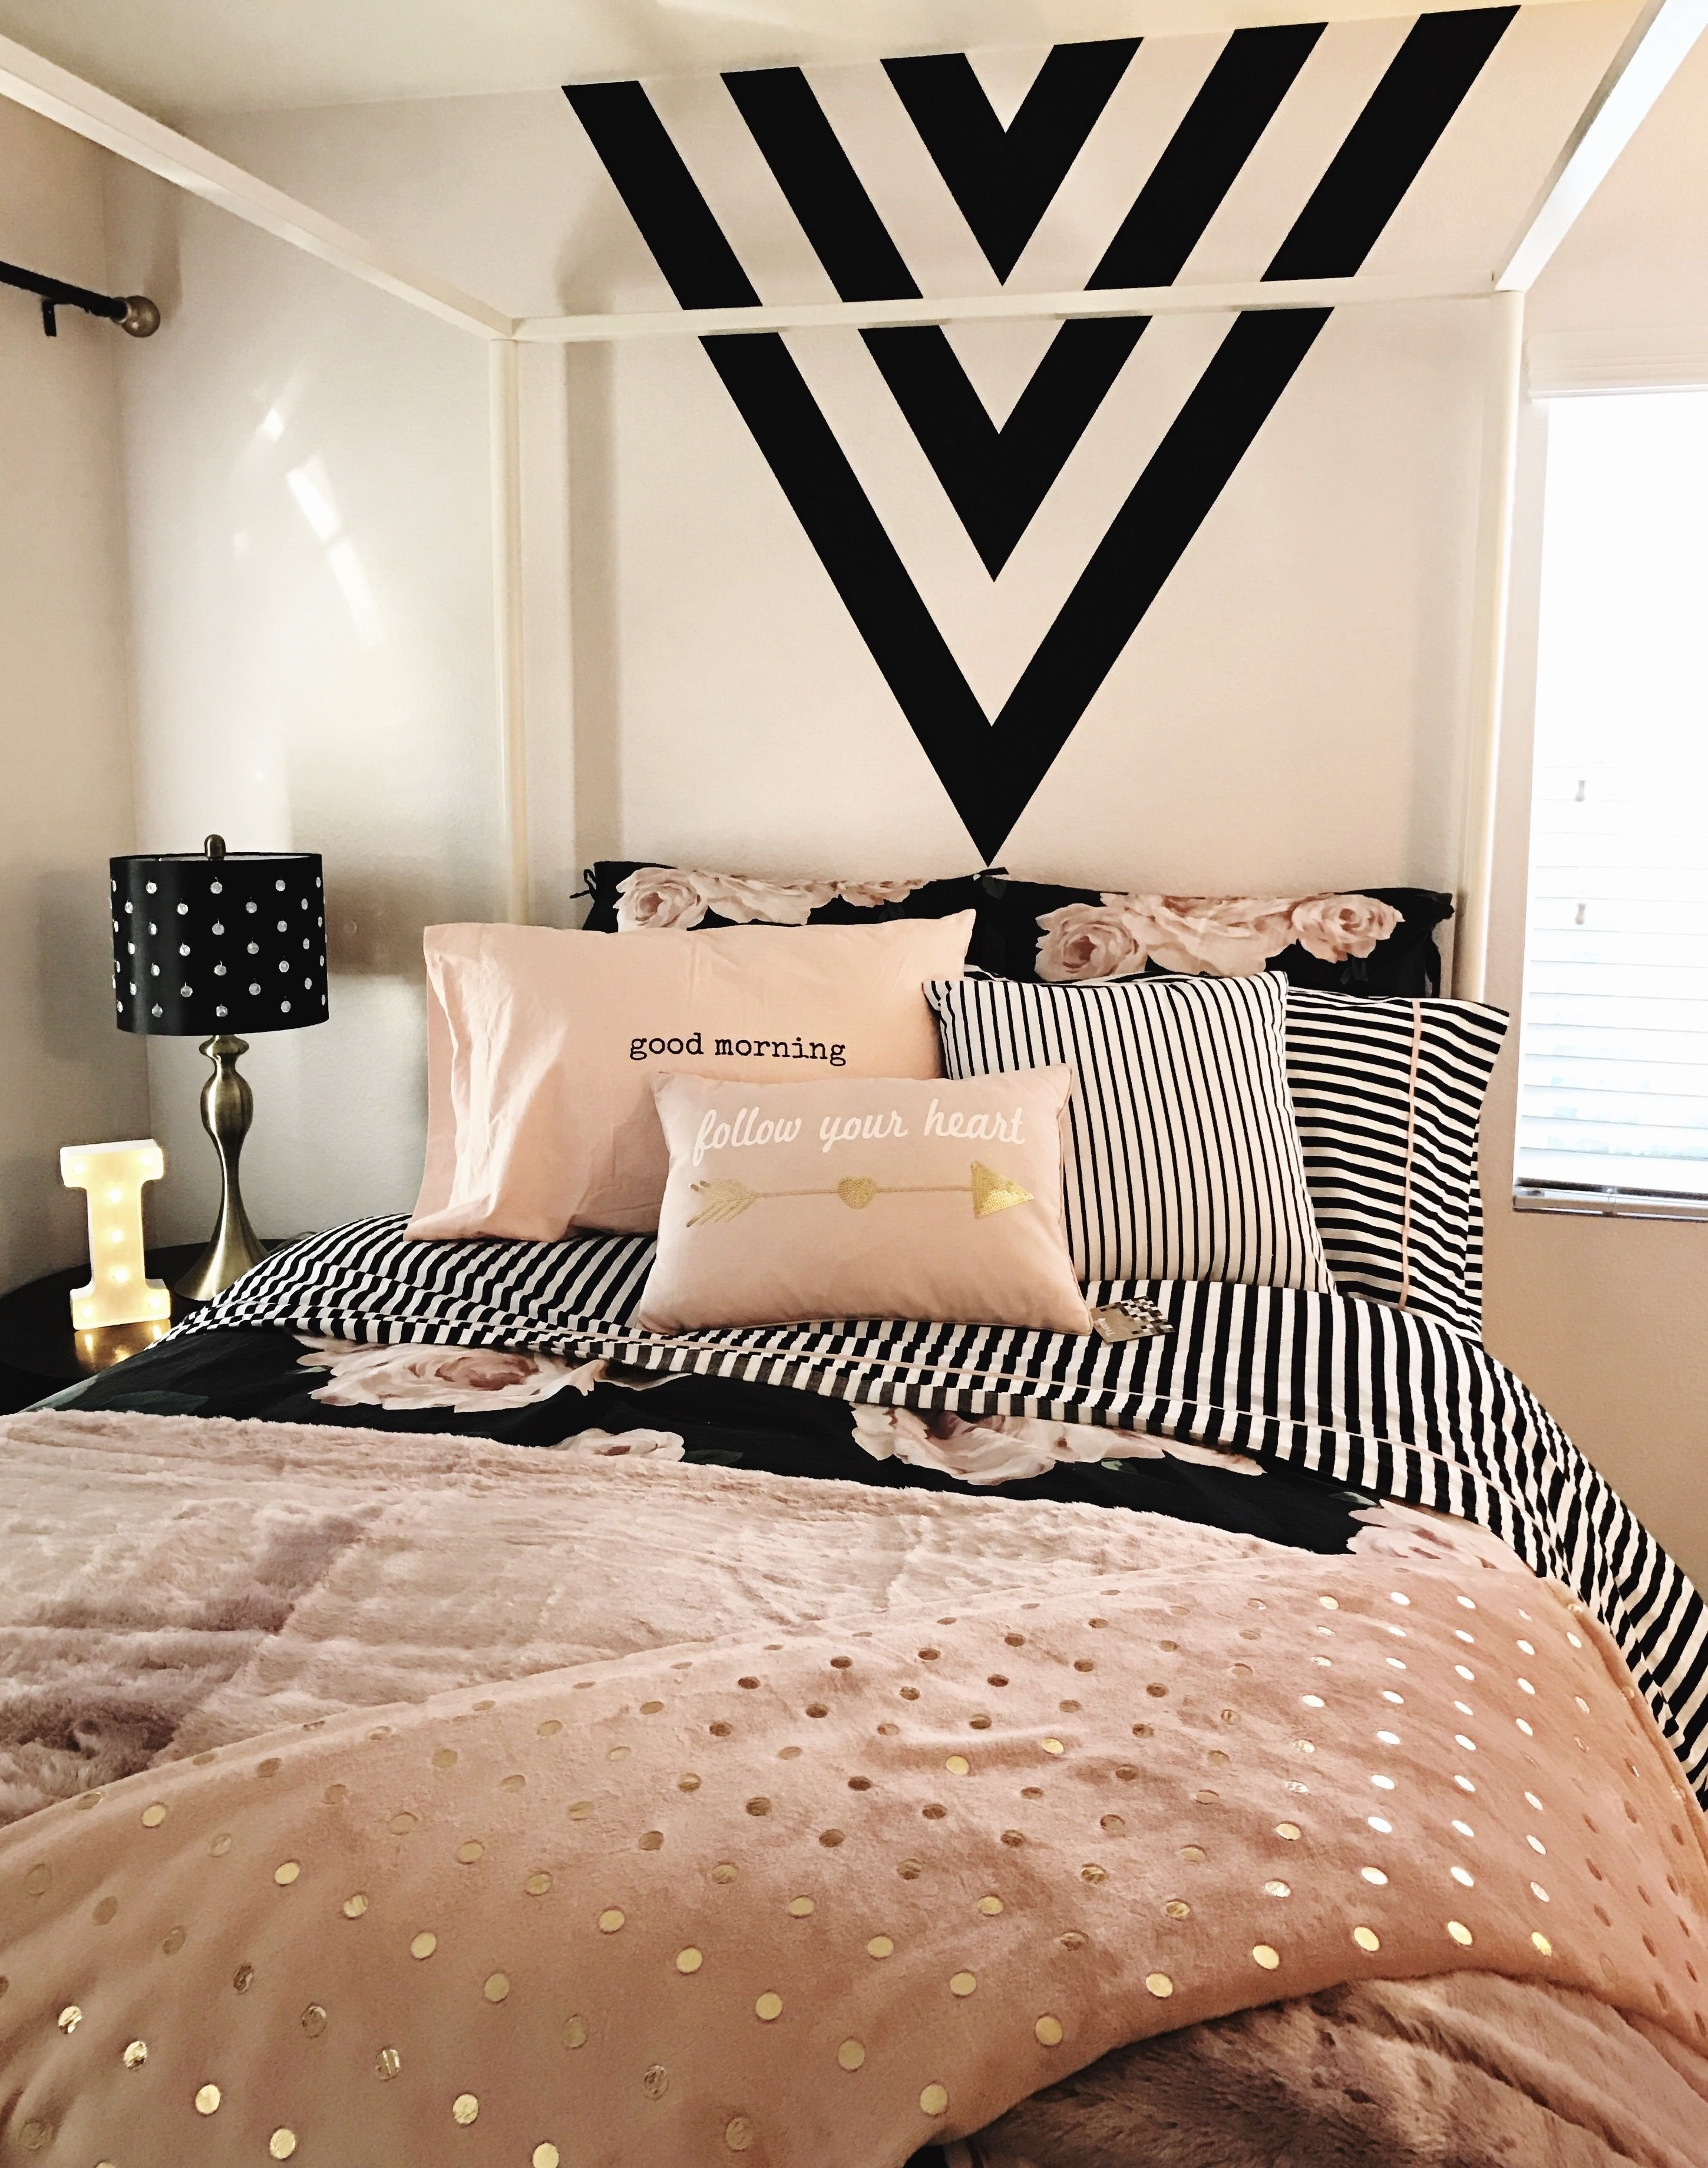 10 Lovable Pink And Black Bedroom Ideas girls room black gold and pink black paint feature wall black 2020